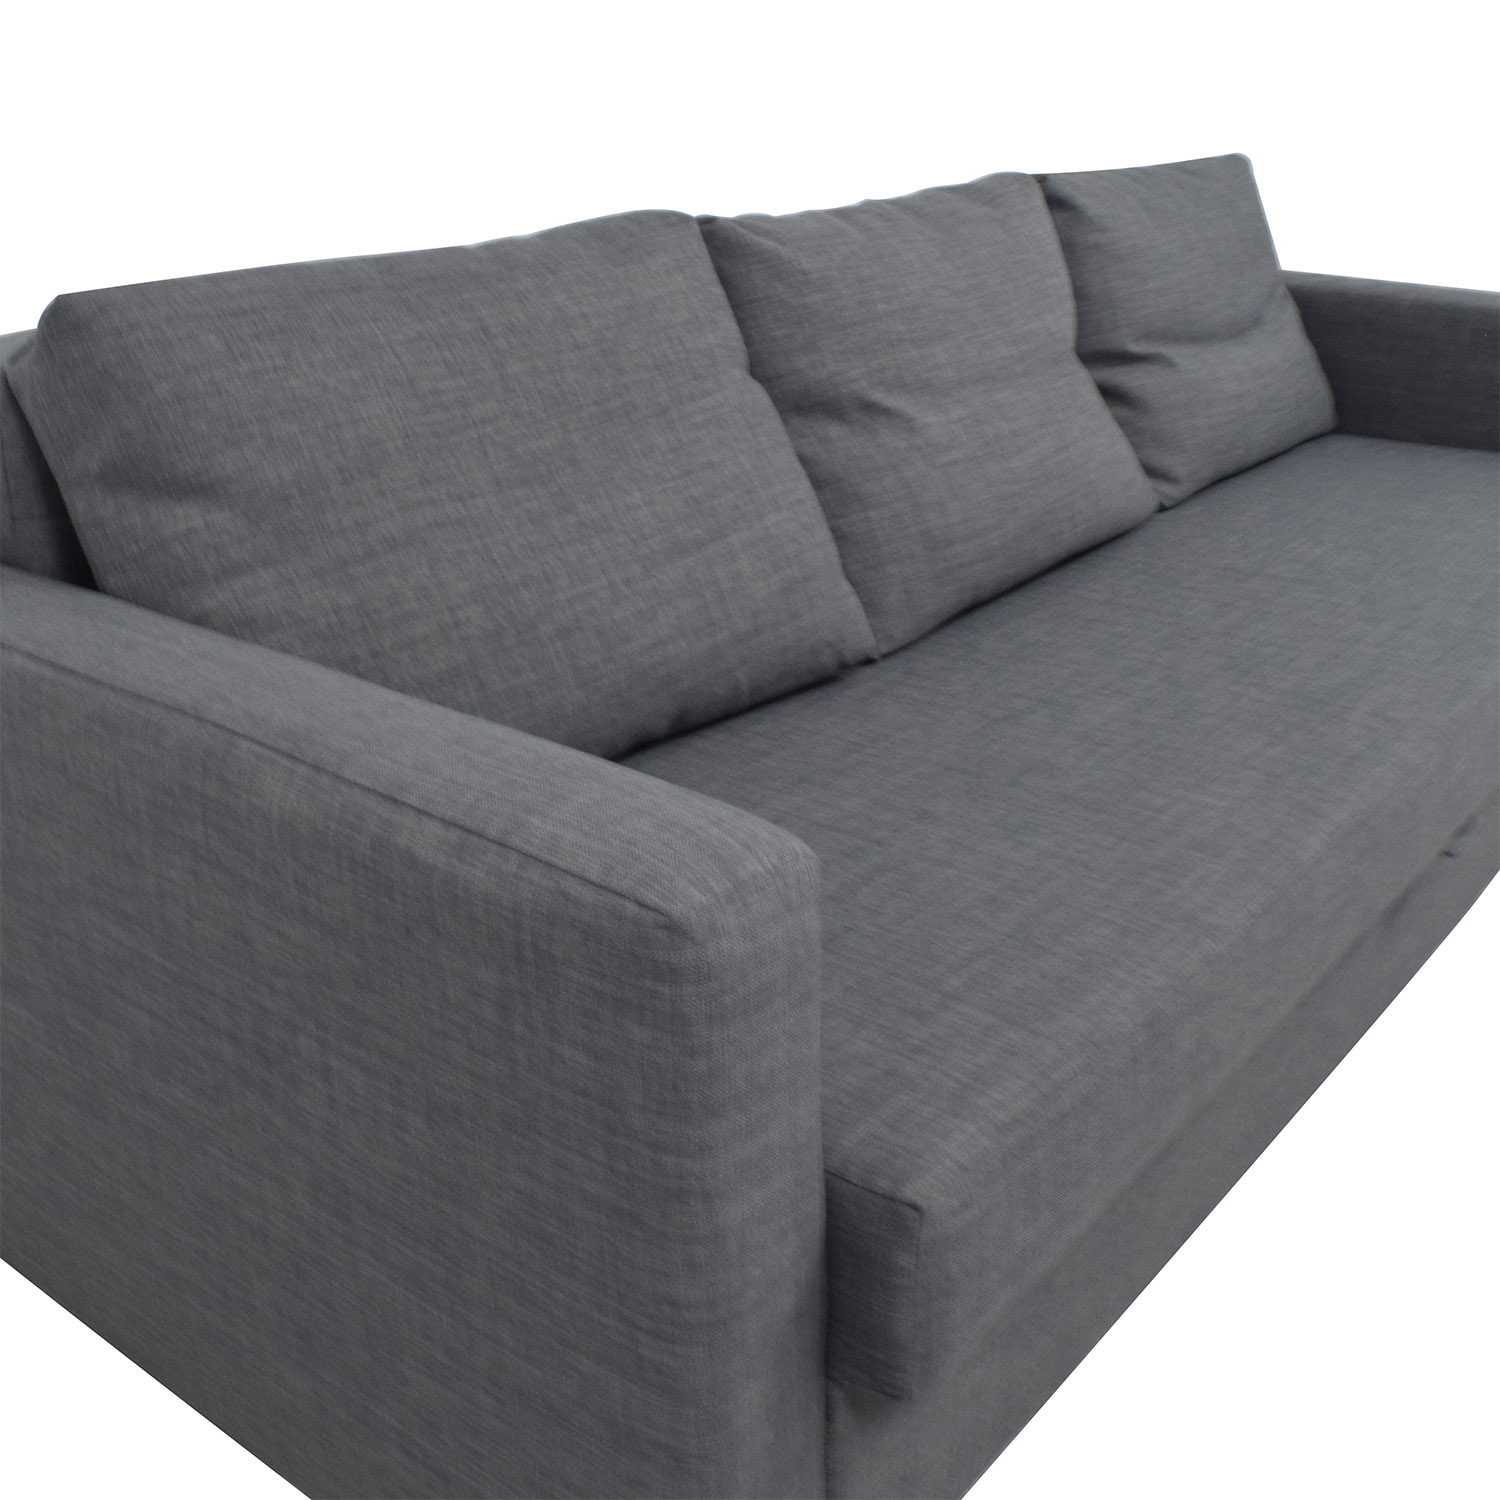 Ikea Vimle Sofa Gumtree Sofa Ikea Chaise Longue Good Ikea Chaise Couch Long Couch With